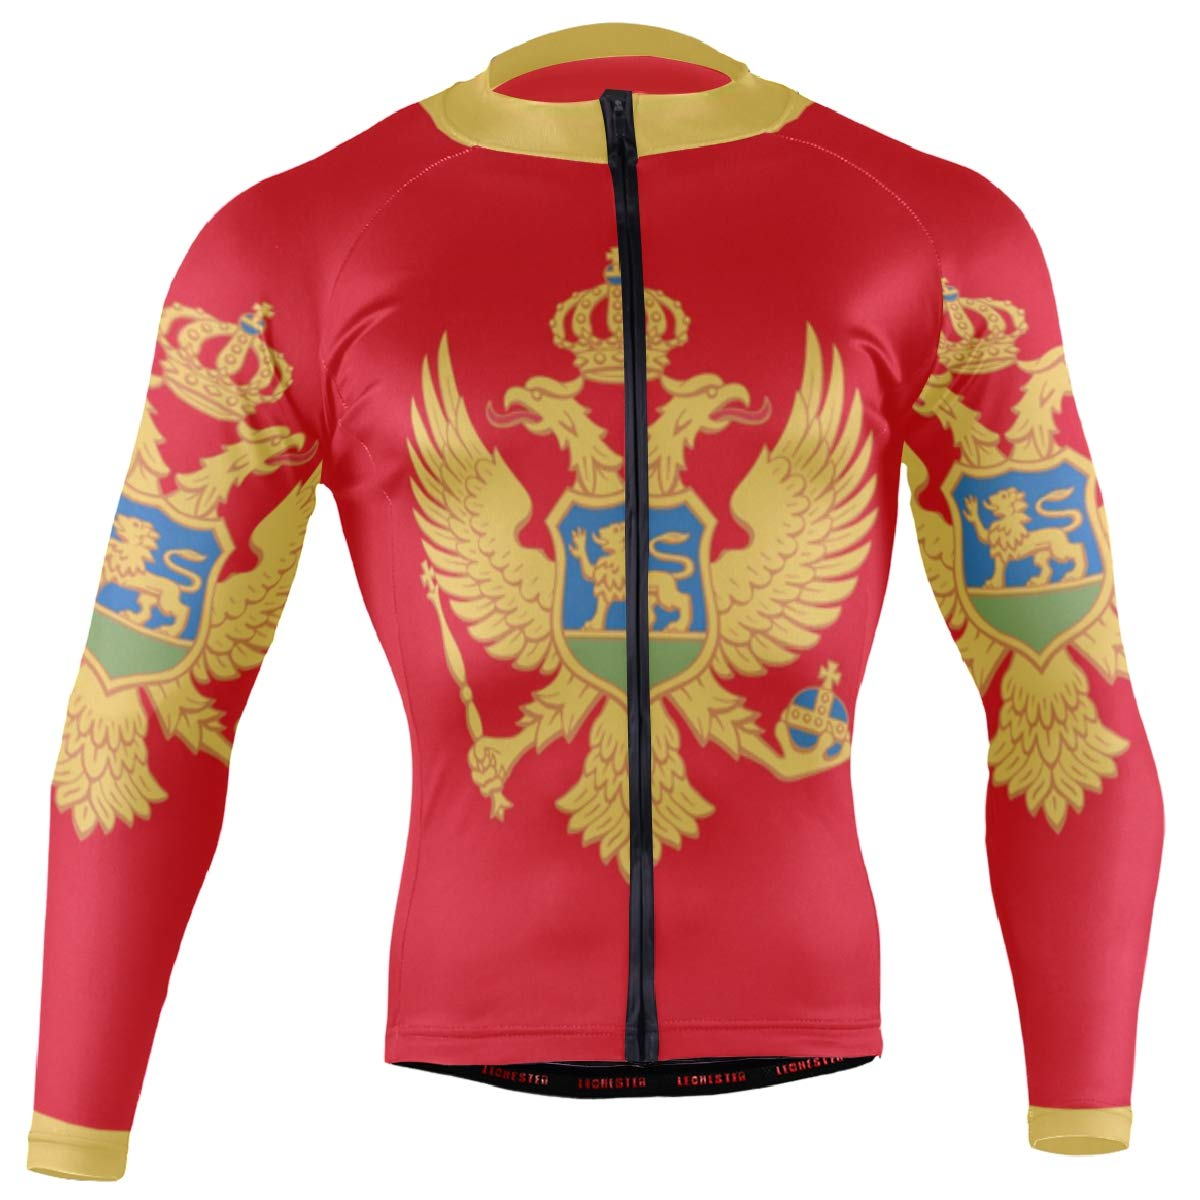 CHINEIN Men's Cycling Jersey Long Sleeve with 3 Rear Pockets Shirt Montenegro Flag by CHINEIN